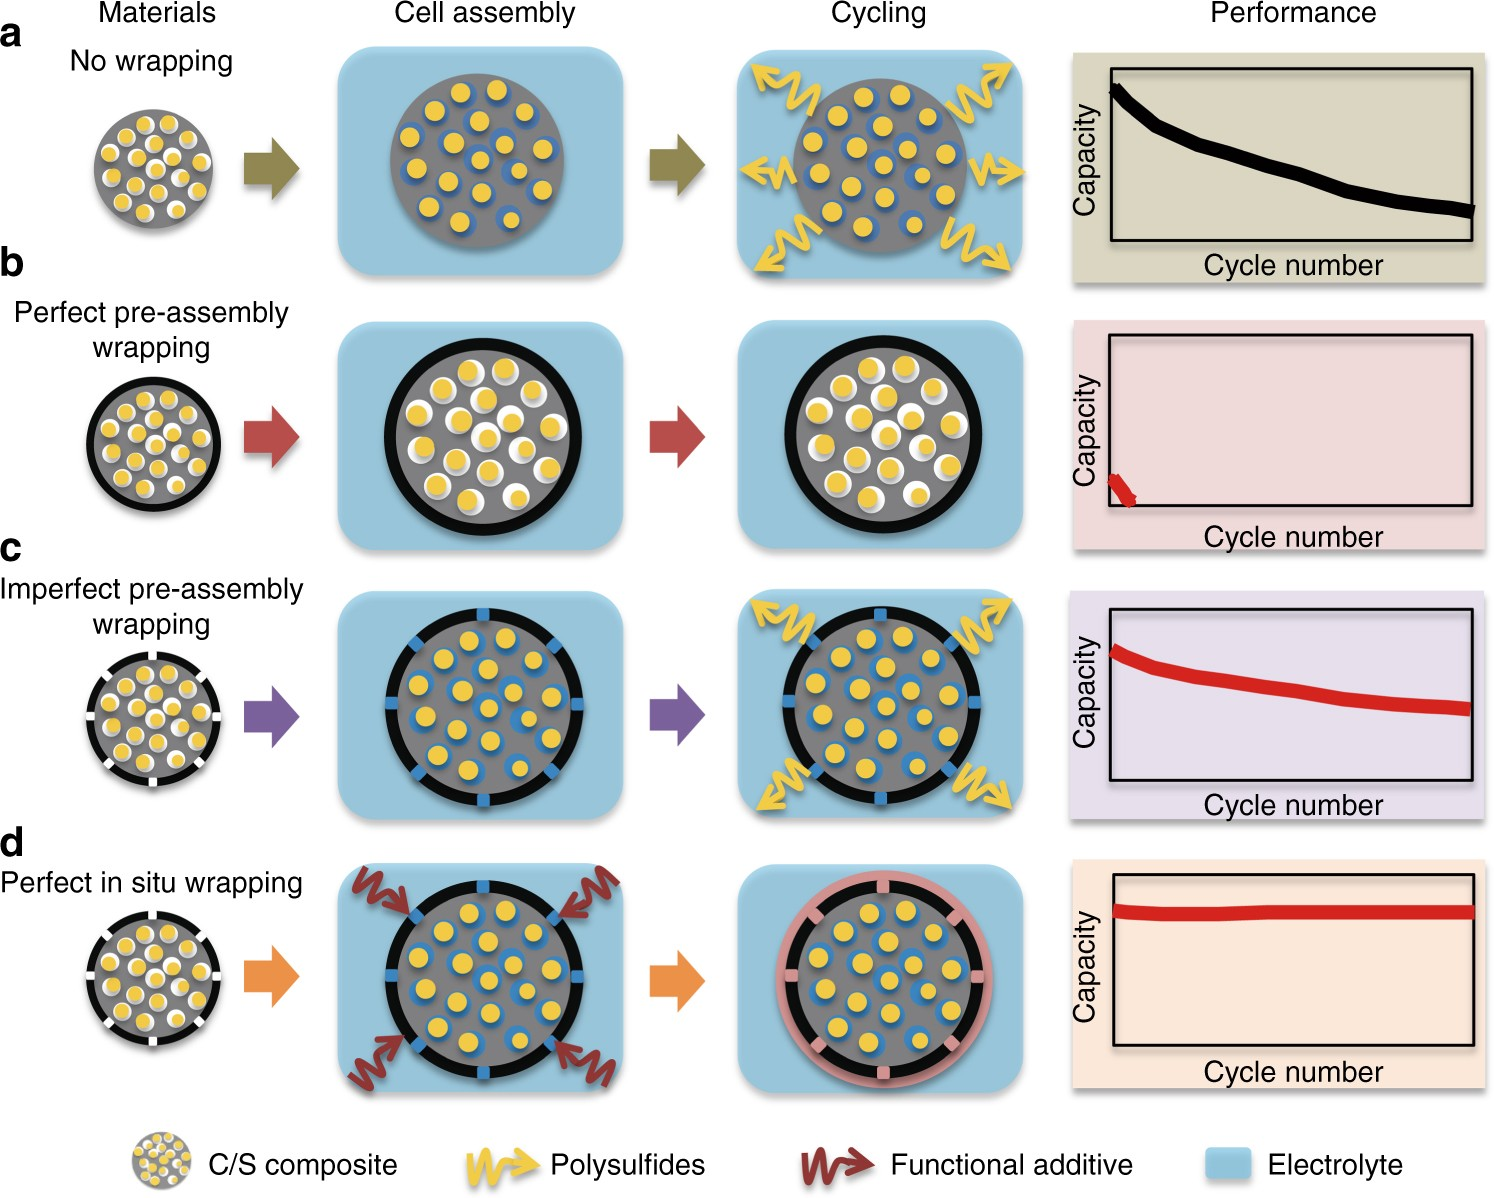 In situ wrapping of the cathode material in lithium-sulfur batteries ...